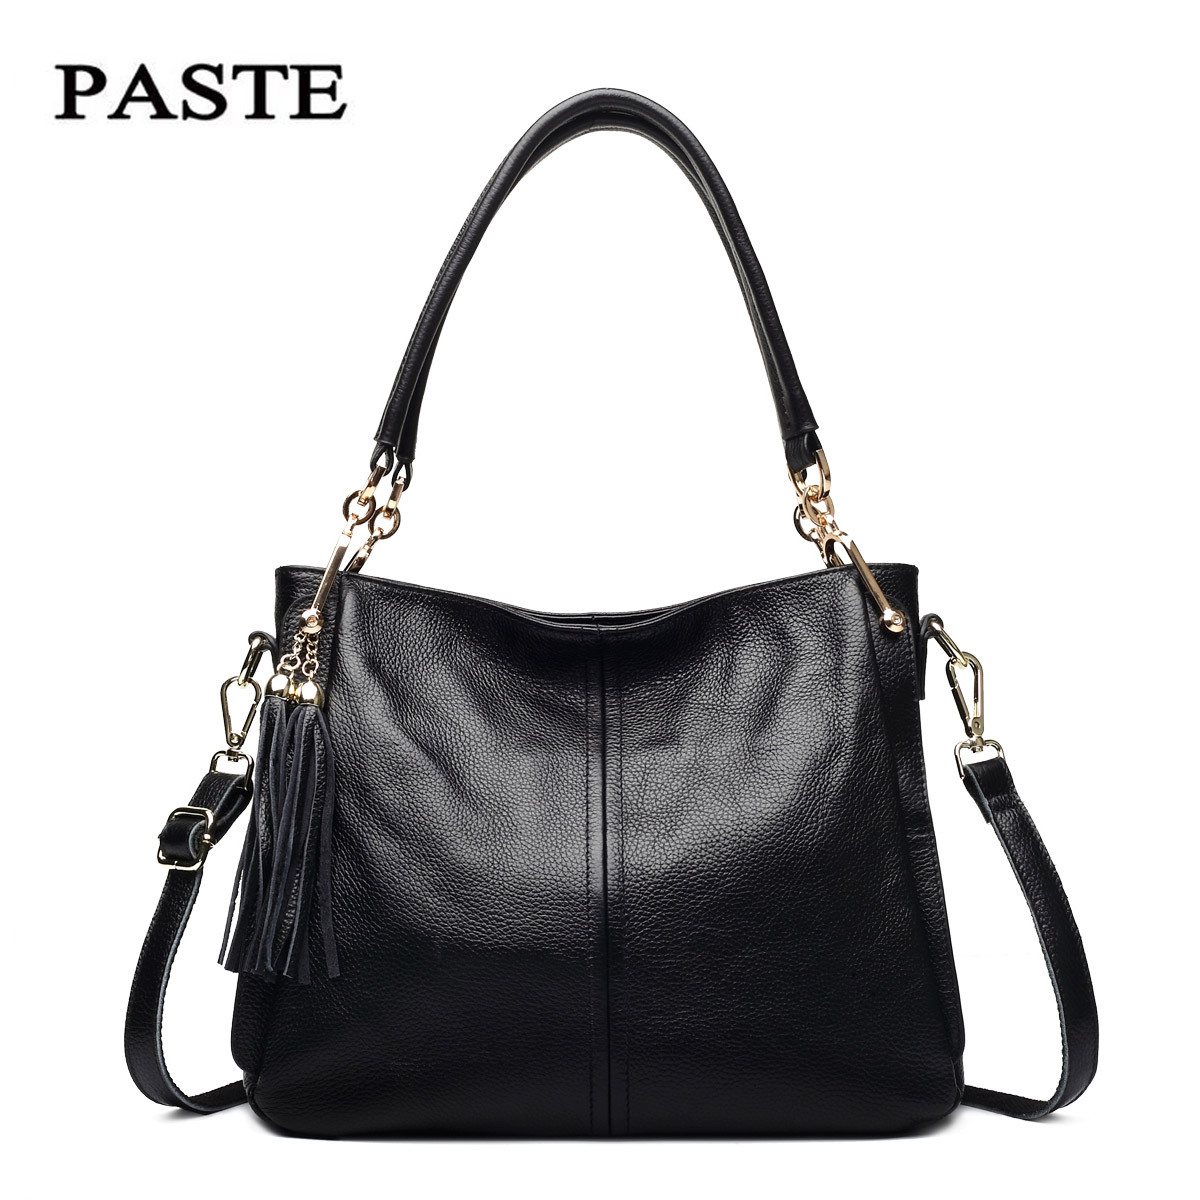 Genuine Leather Handbags For Women Causal Totes Luxury Tassel Designer Big Shopping Bags Sac A Main Fashion Shoulder Bag meiyashidun fashion genuine leather handbags women bag luxury shoulder bags sac a main bolsos evening clutch messenger bag totes